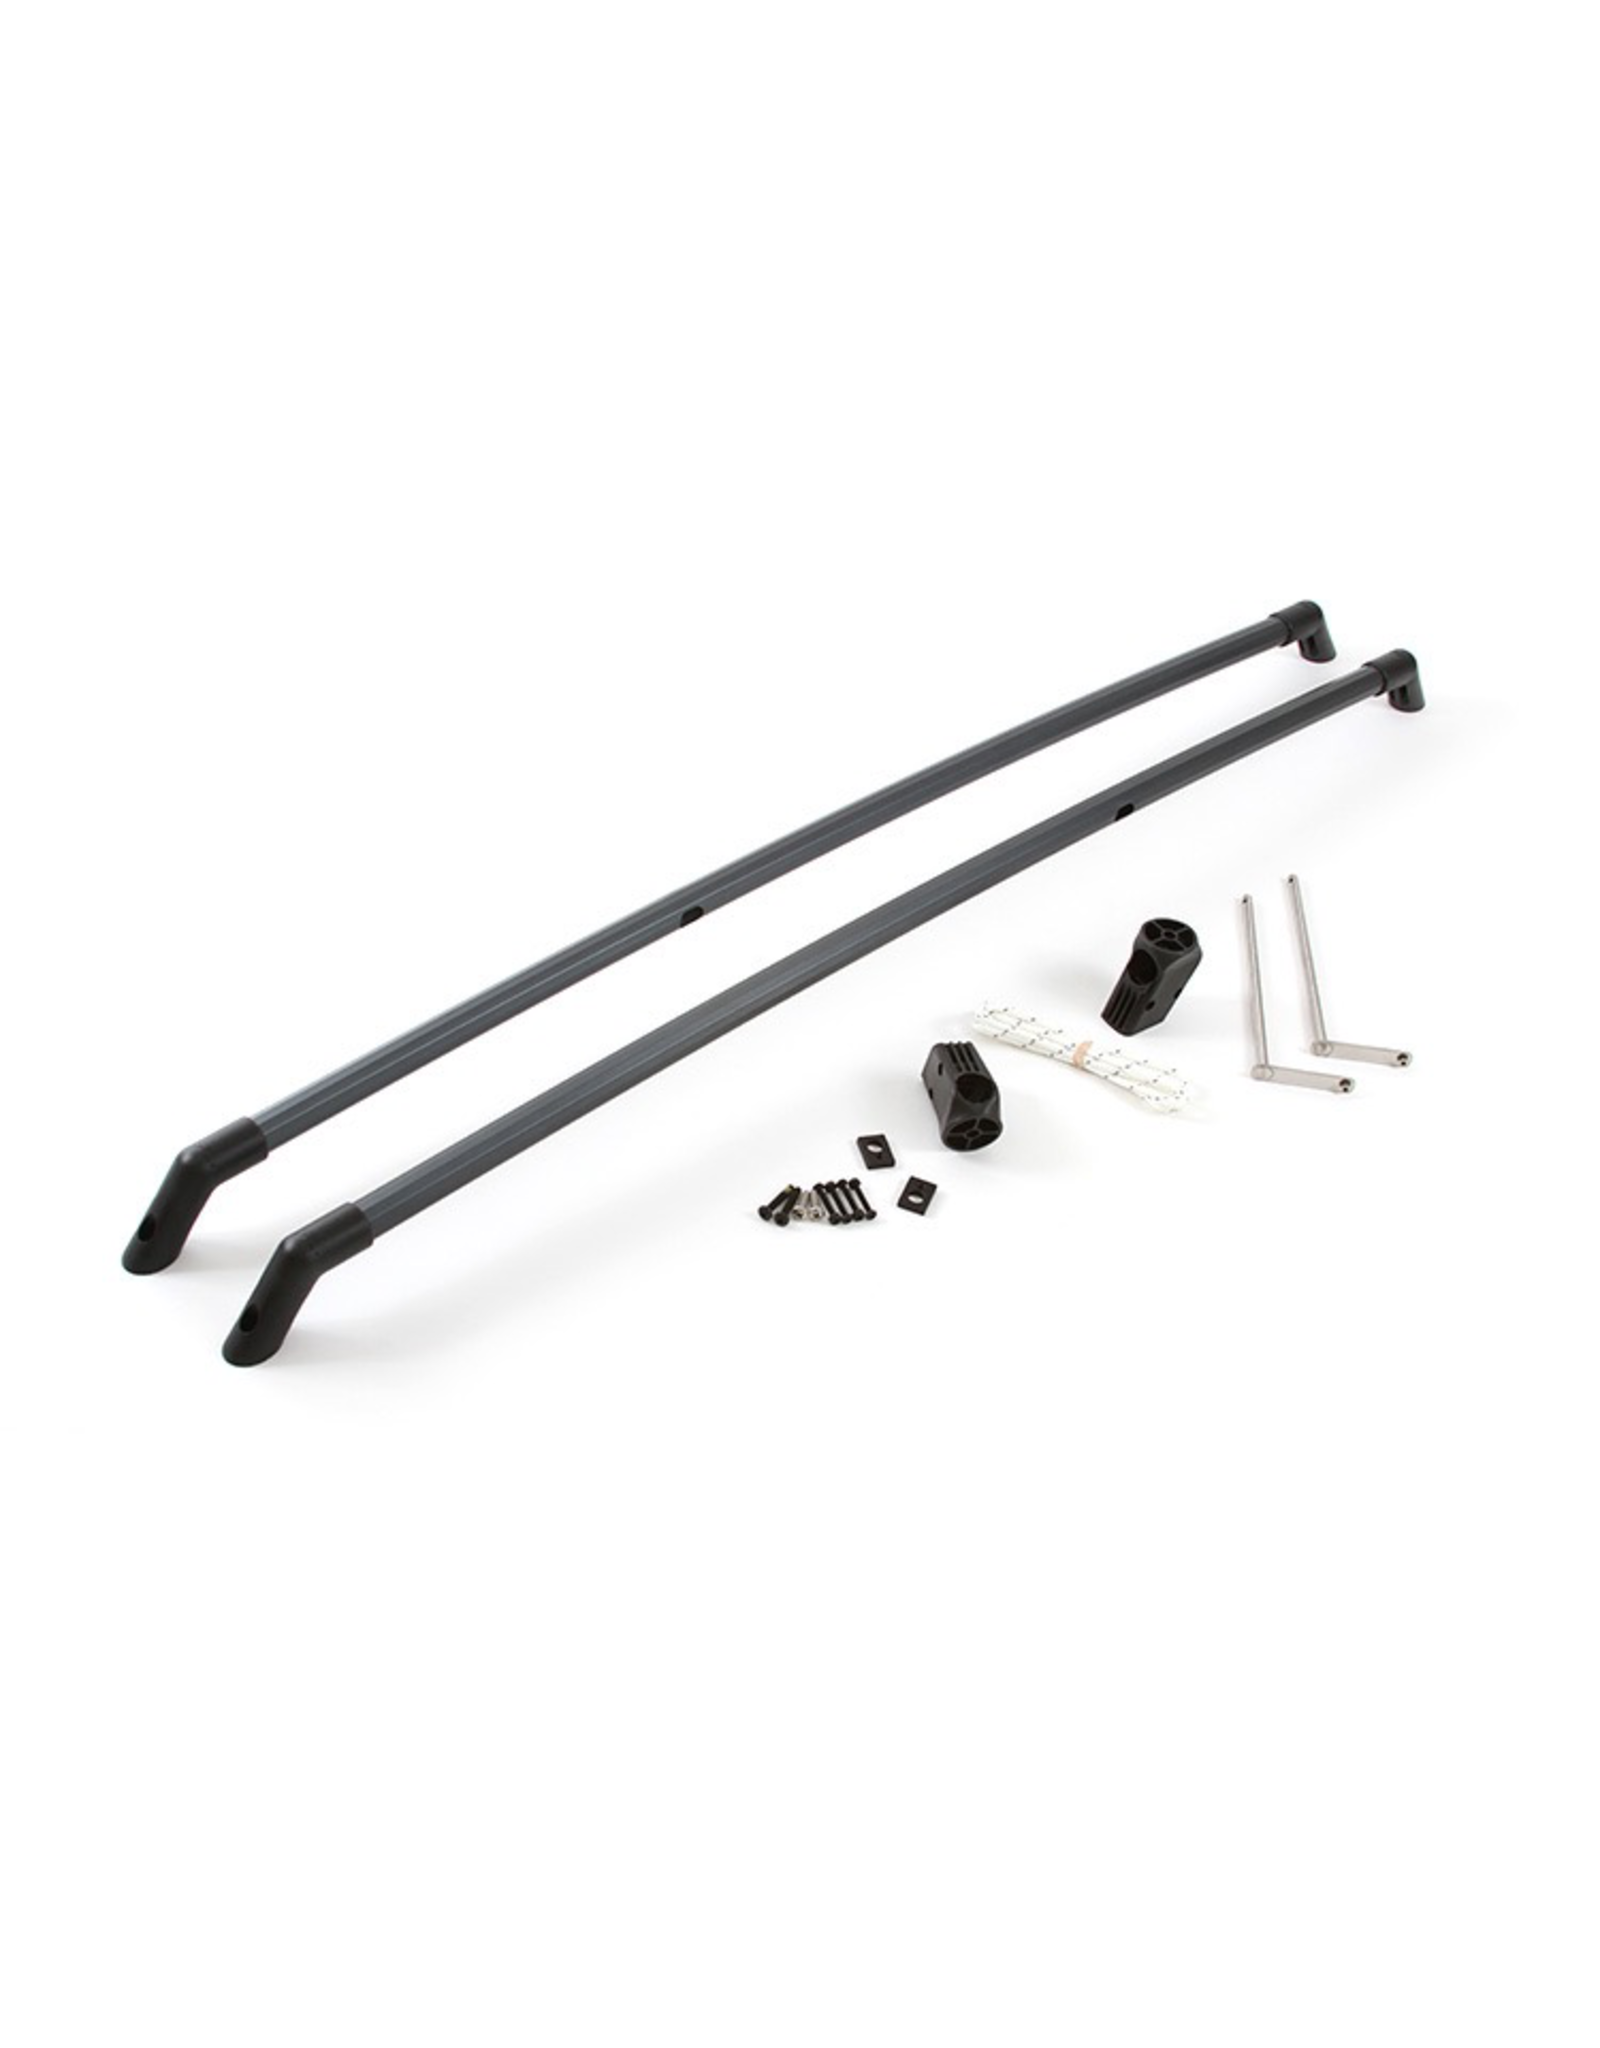 Hobie Hobie H-Rail Upgrade Kit for the Hobie Pro Angler 14